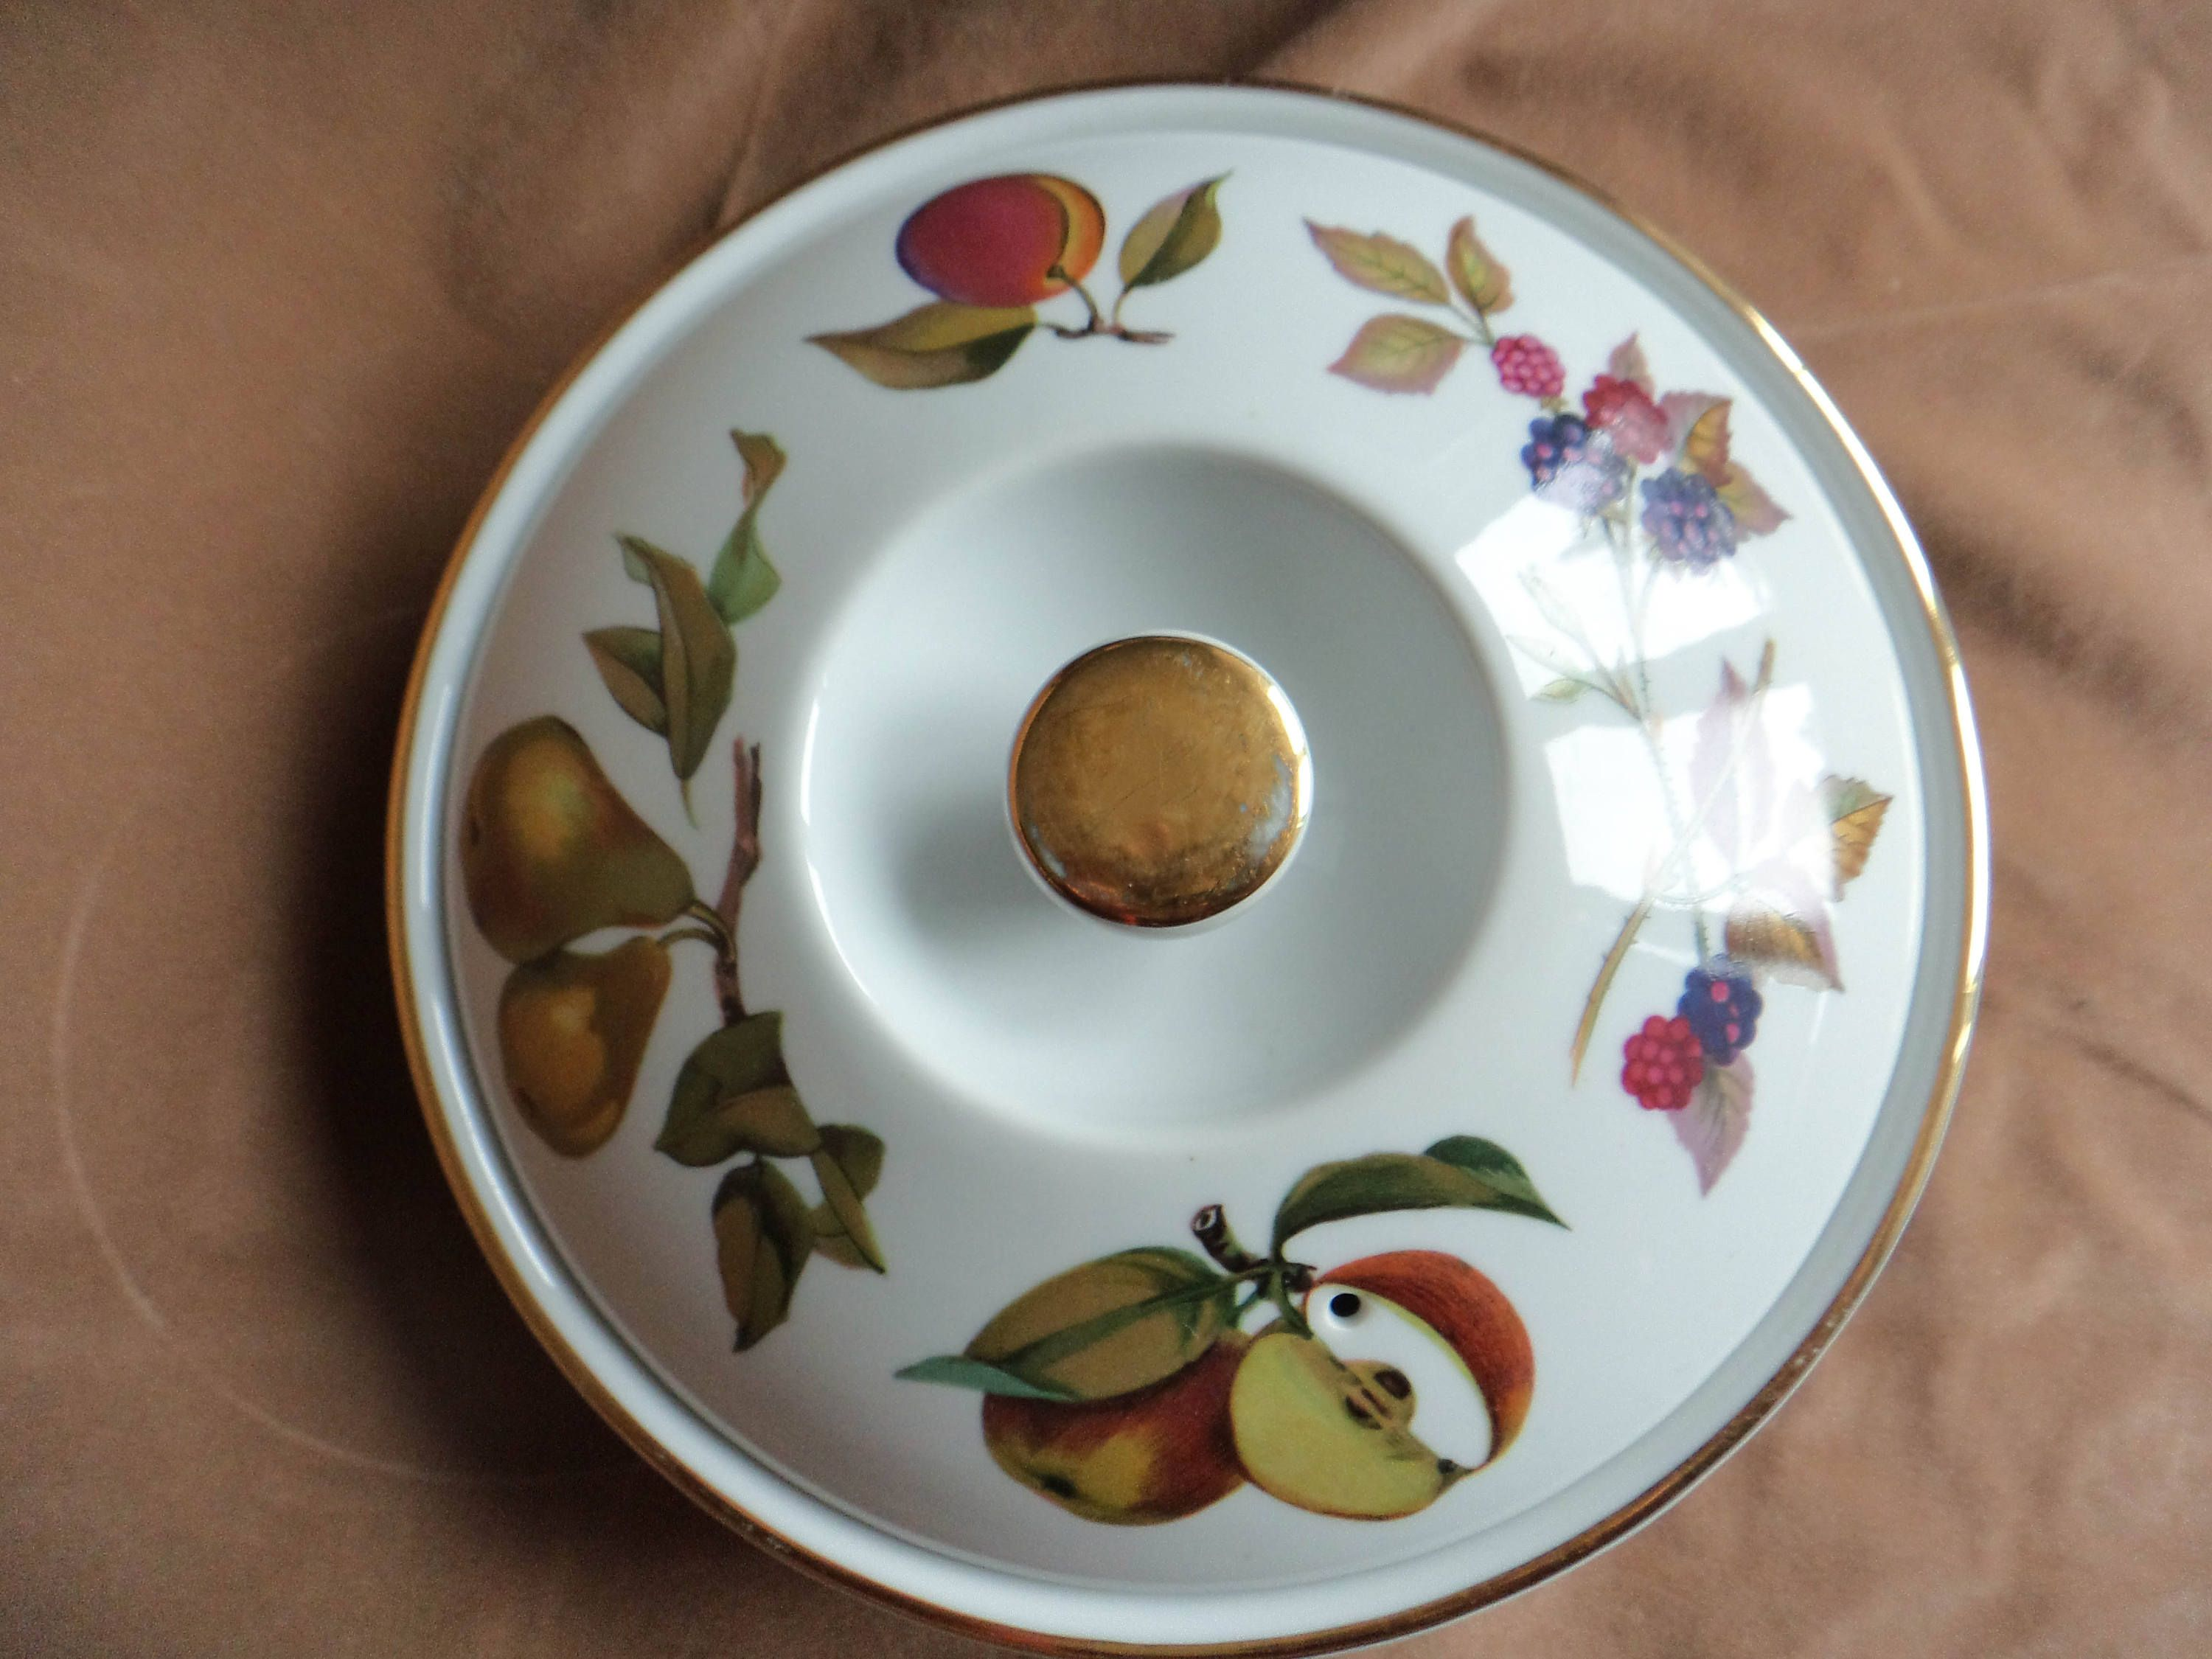 Royal Worcester Evesham Round Entrée Dish And Lid Gold Trim Oven To Table  Ware Made In England